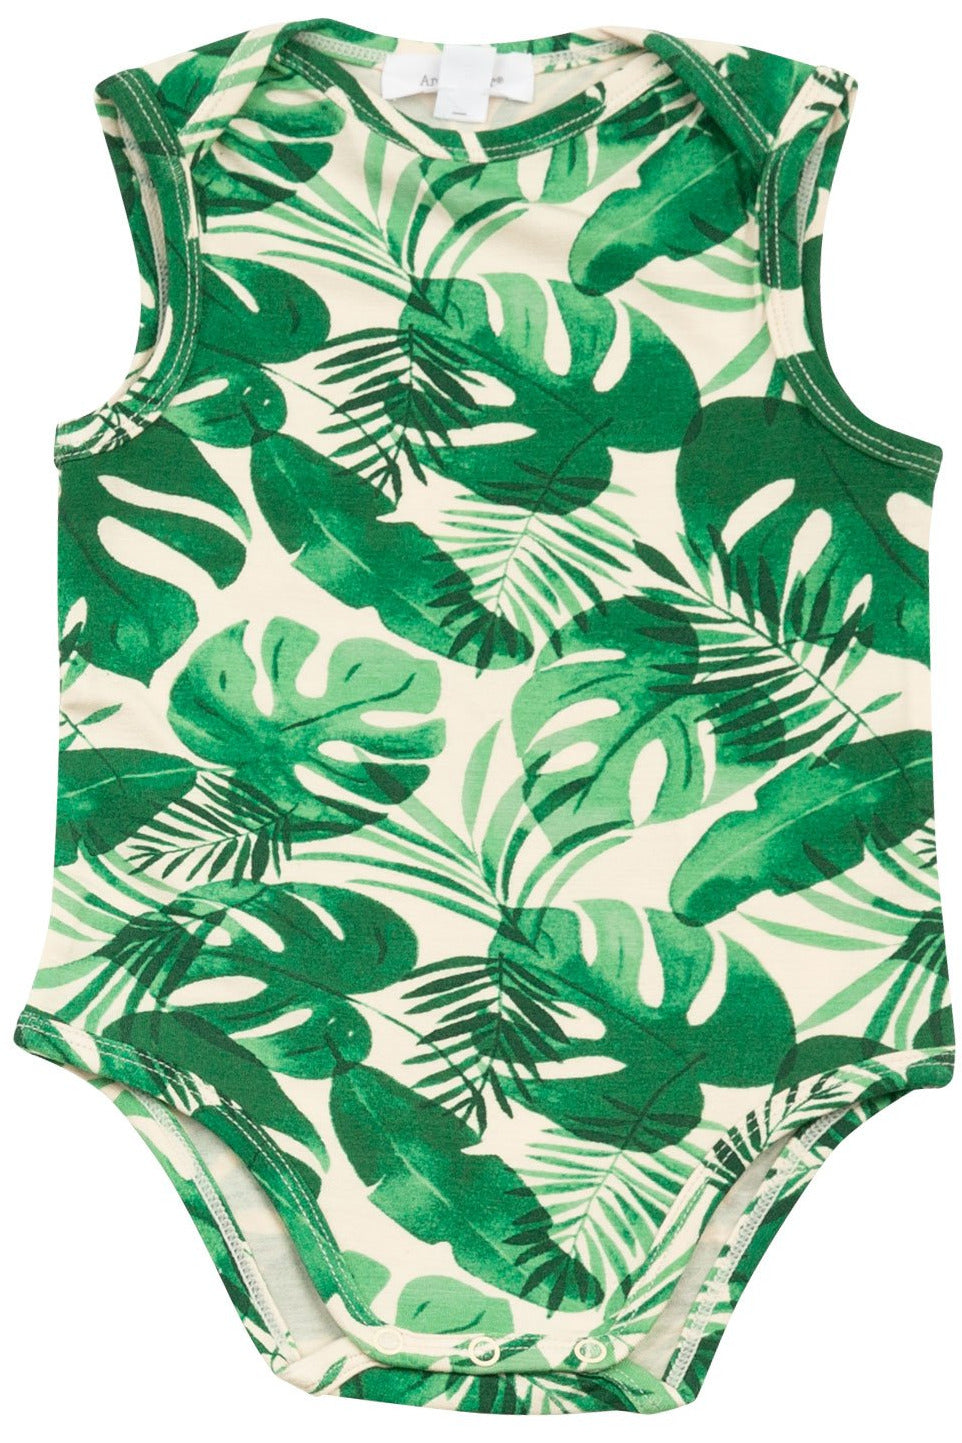 MONSTERA DELICIOSA BODYSUIT